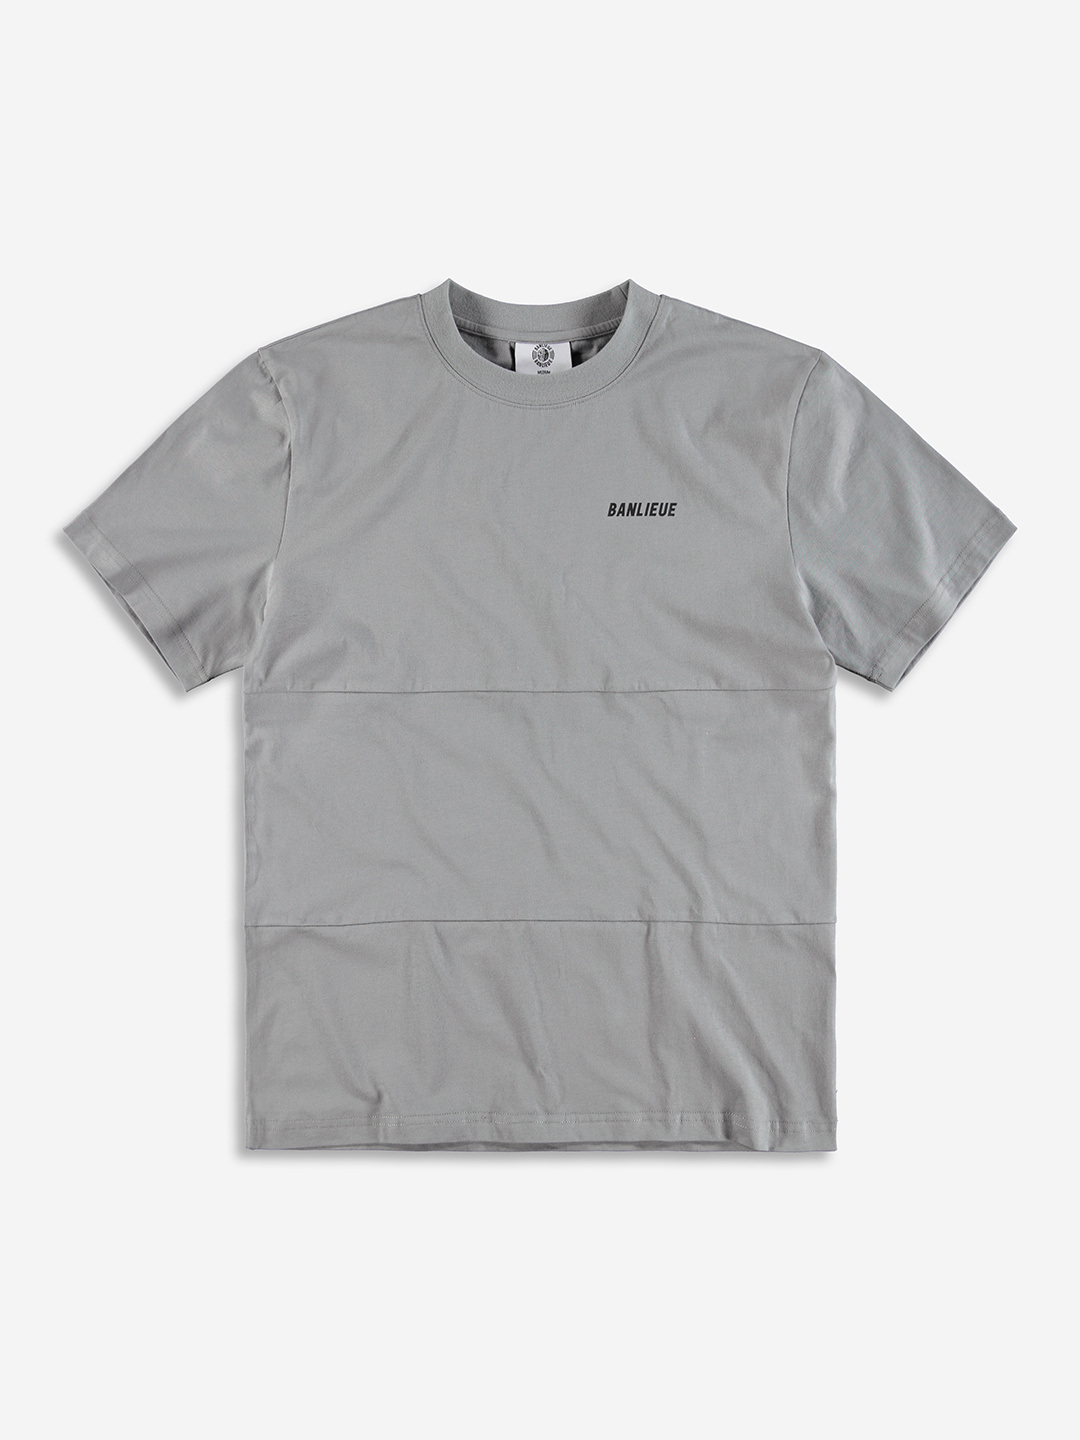 TXT T-SHIRT GREY